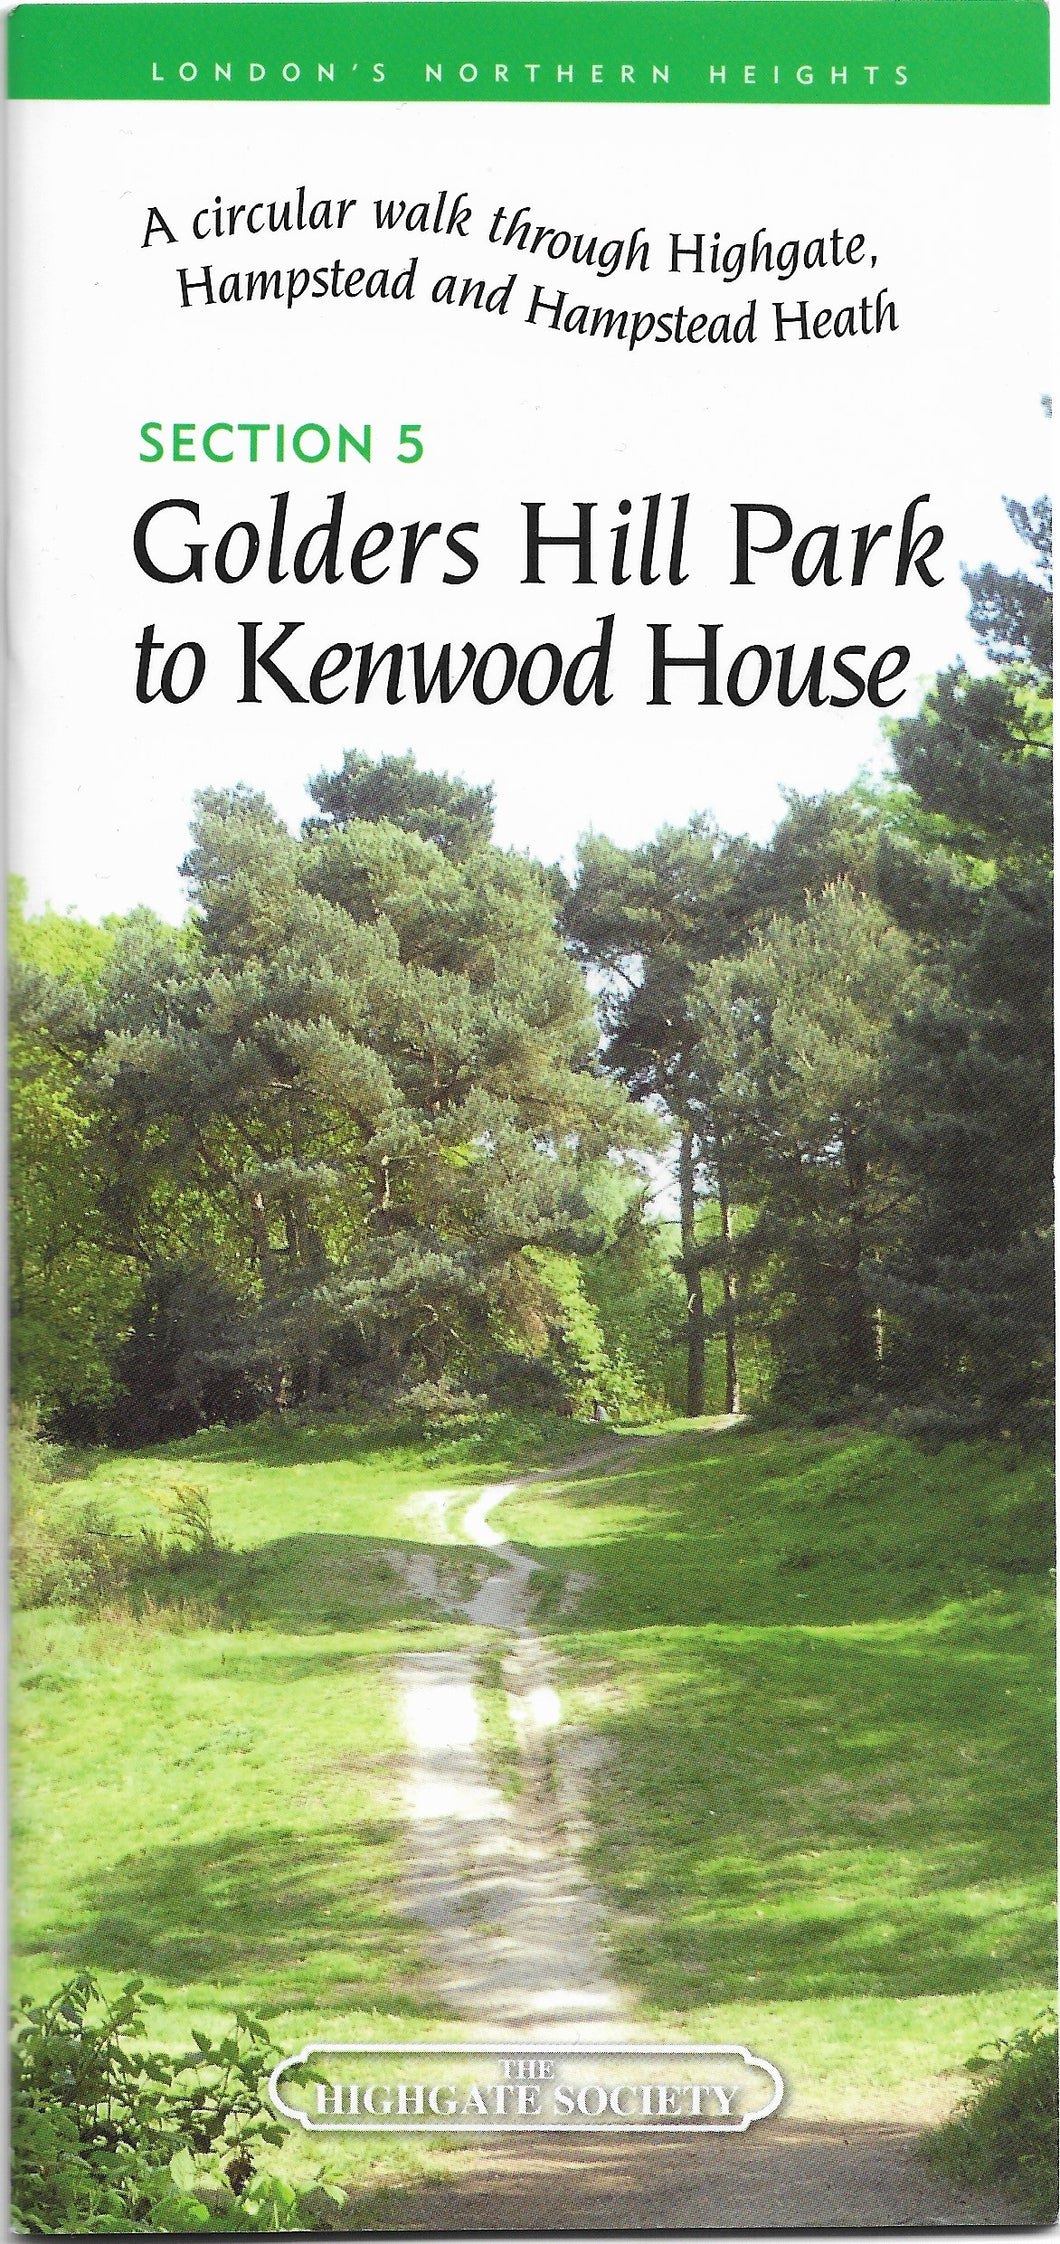 Guide - (5) Golders Hill Park to Kenwood House